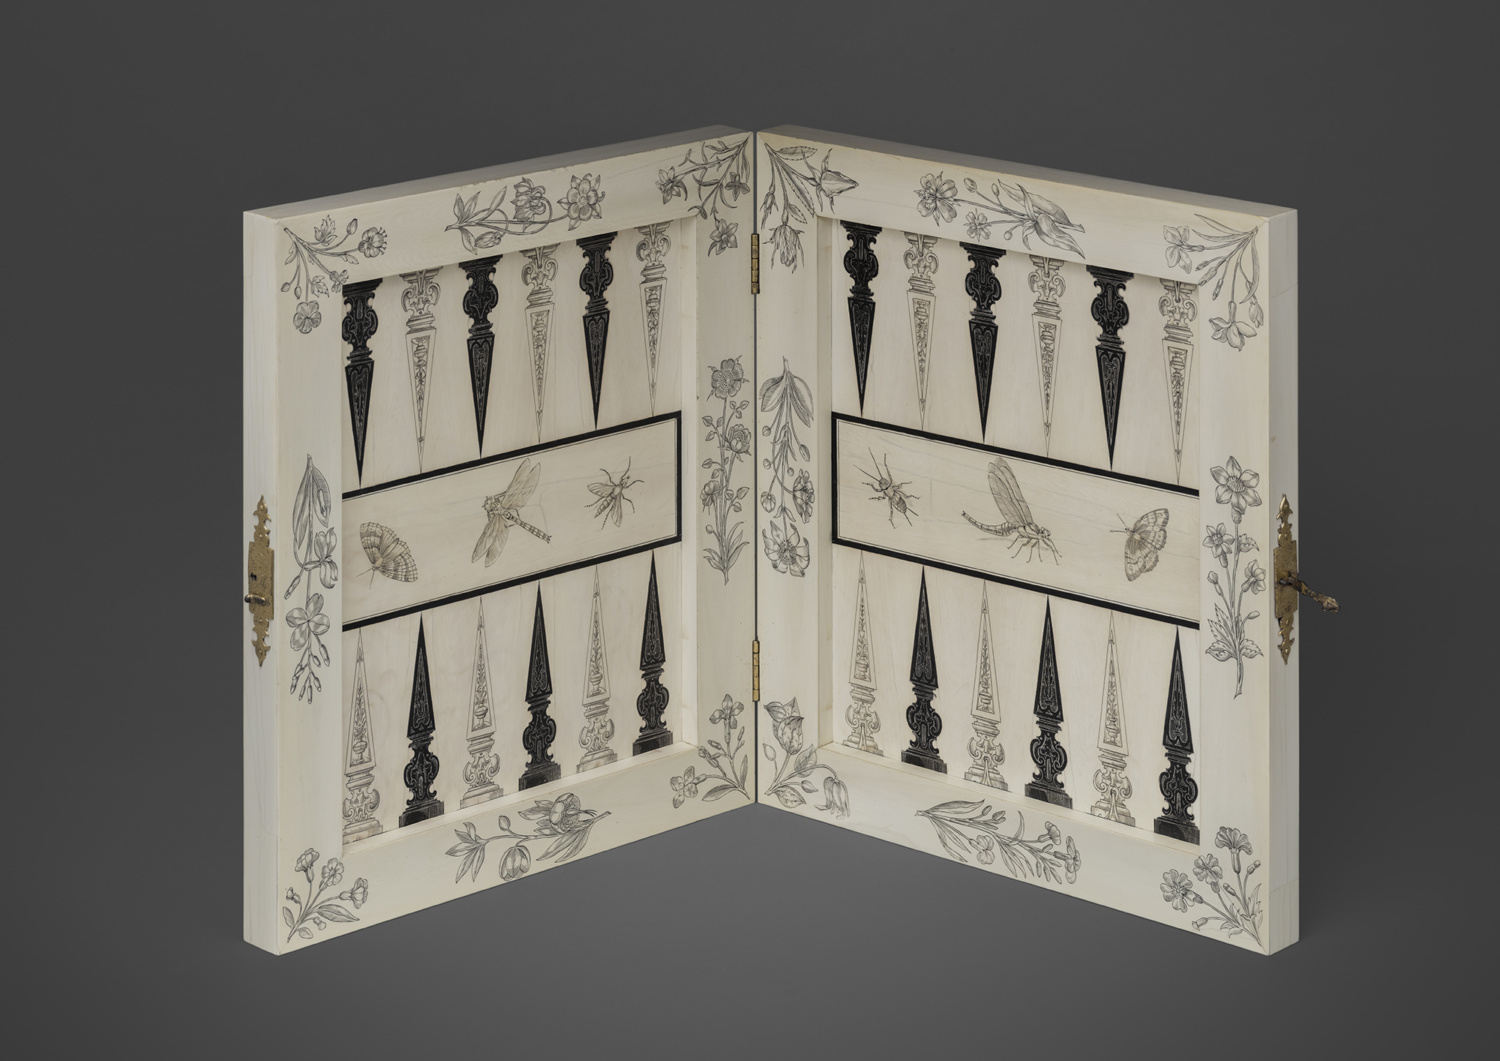 An ivory and ebony game board - Galerie Kugel